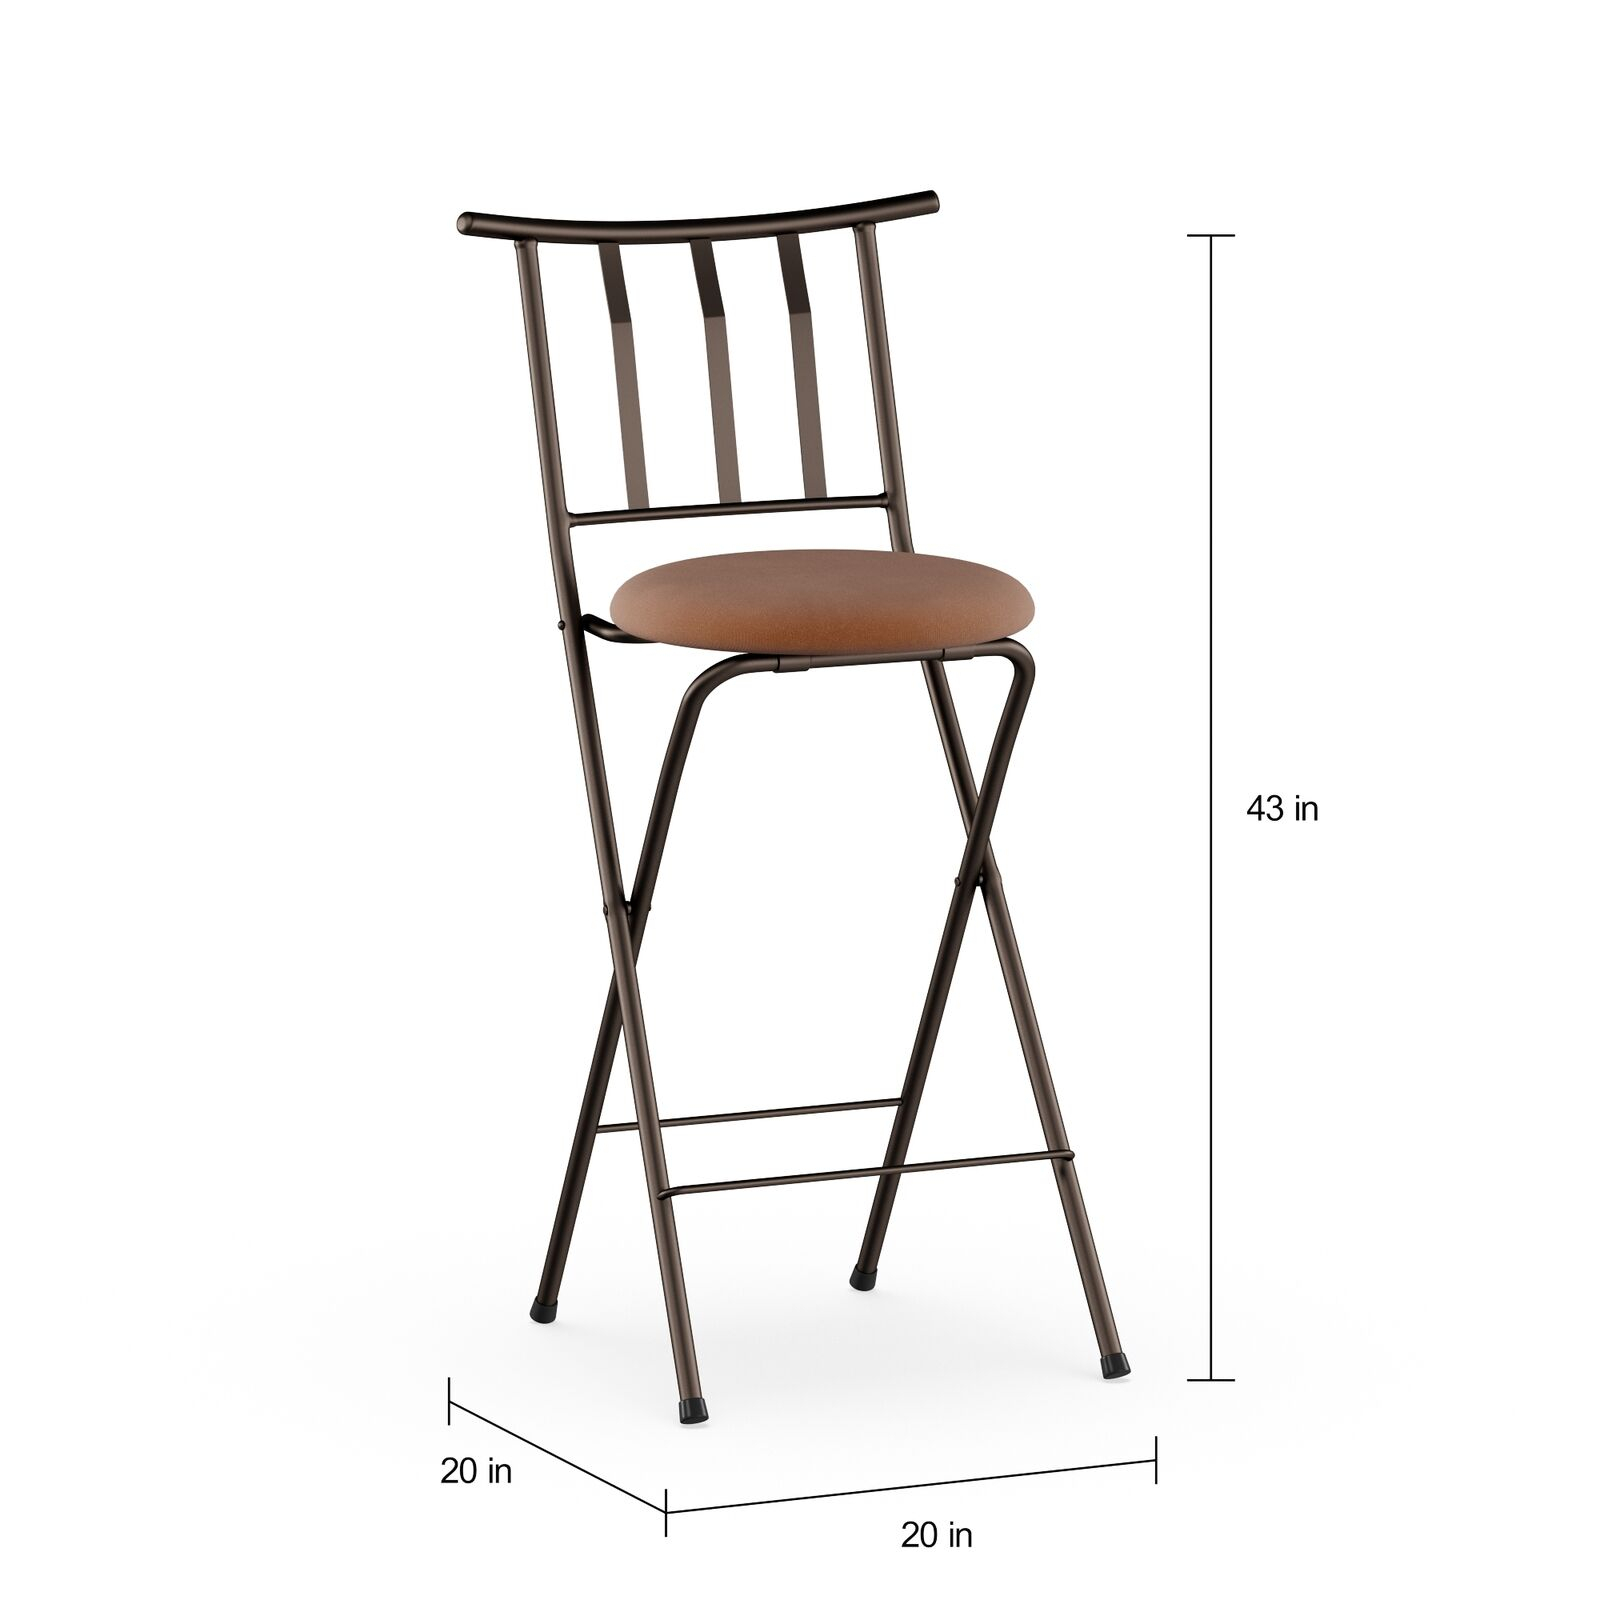 "Mainstays Slat Back Folding 30"" Bronze Bar Stool Multiple Colors Throughout Tillia Ceramic Garden Stools (View 15 of 25)"